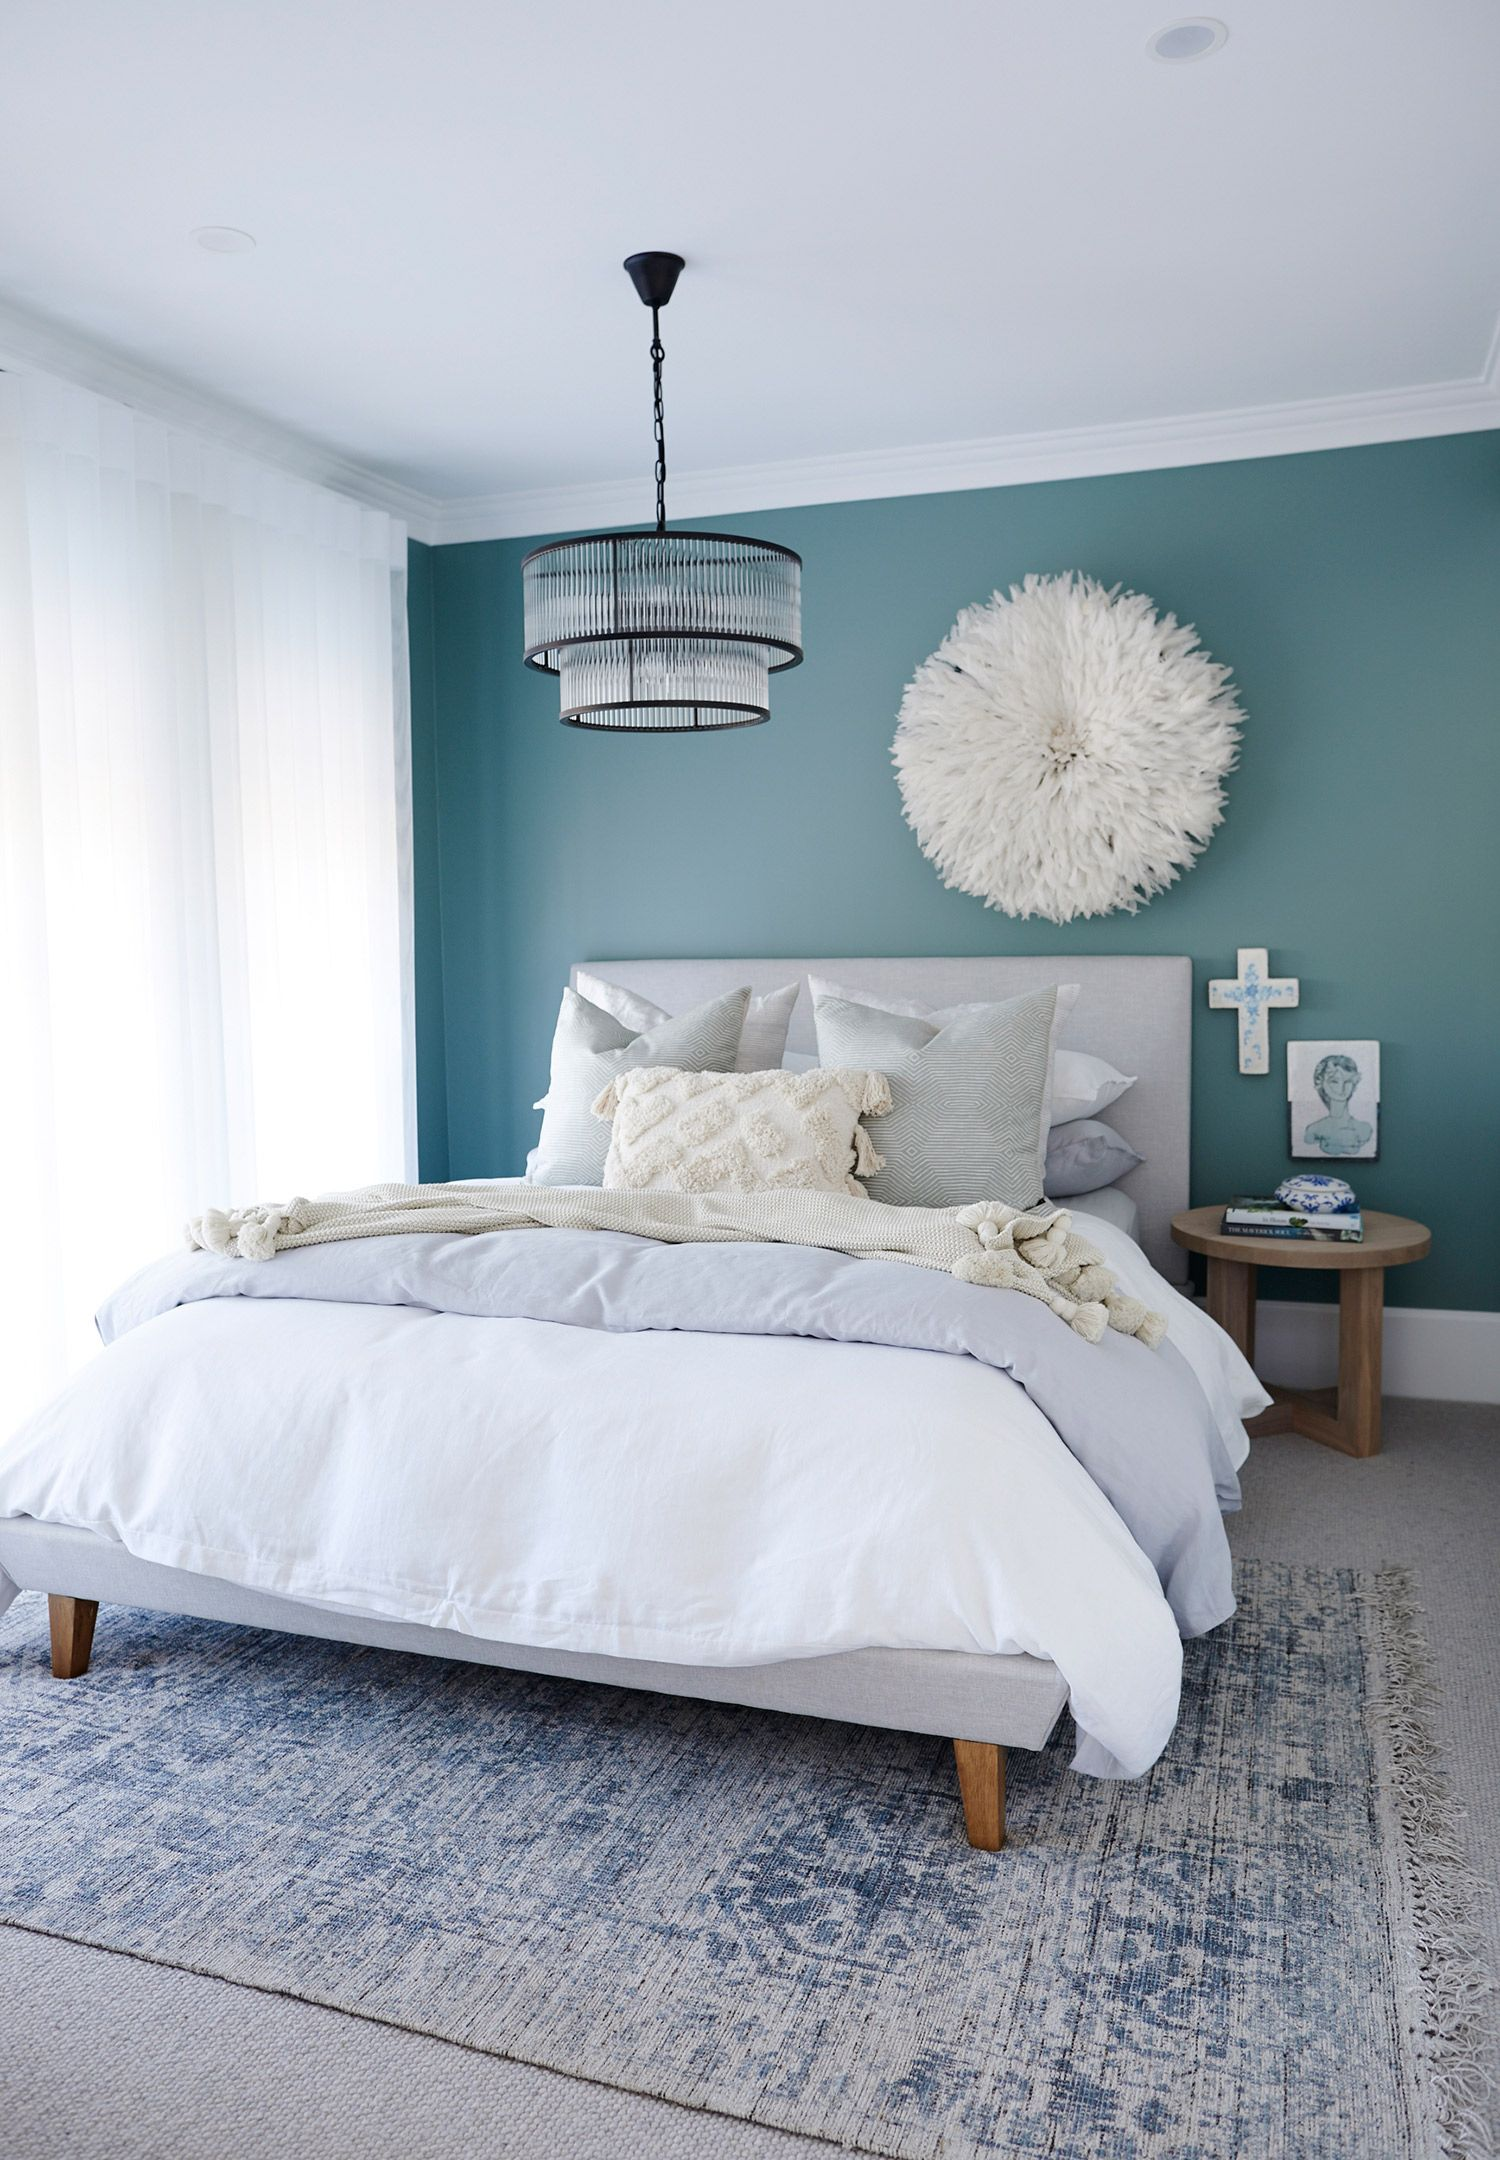 3 Room Hdb Accent Wall: Three Birds Renovations - House 9 - Guest Bedroom